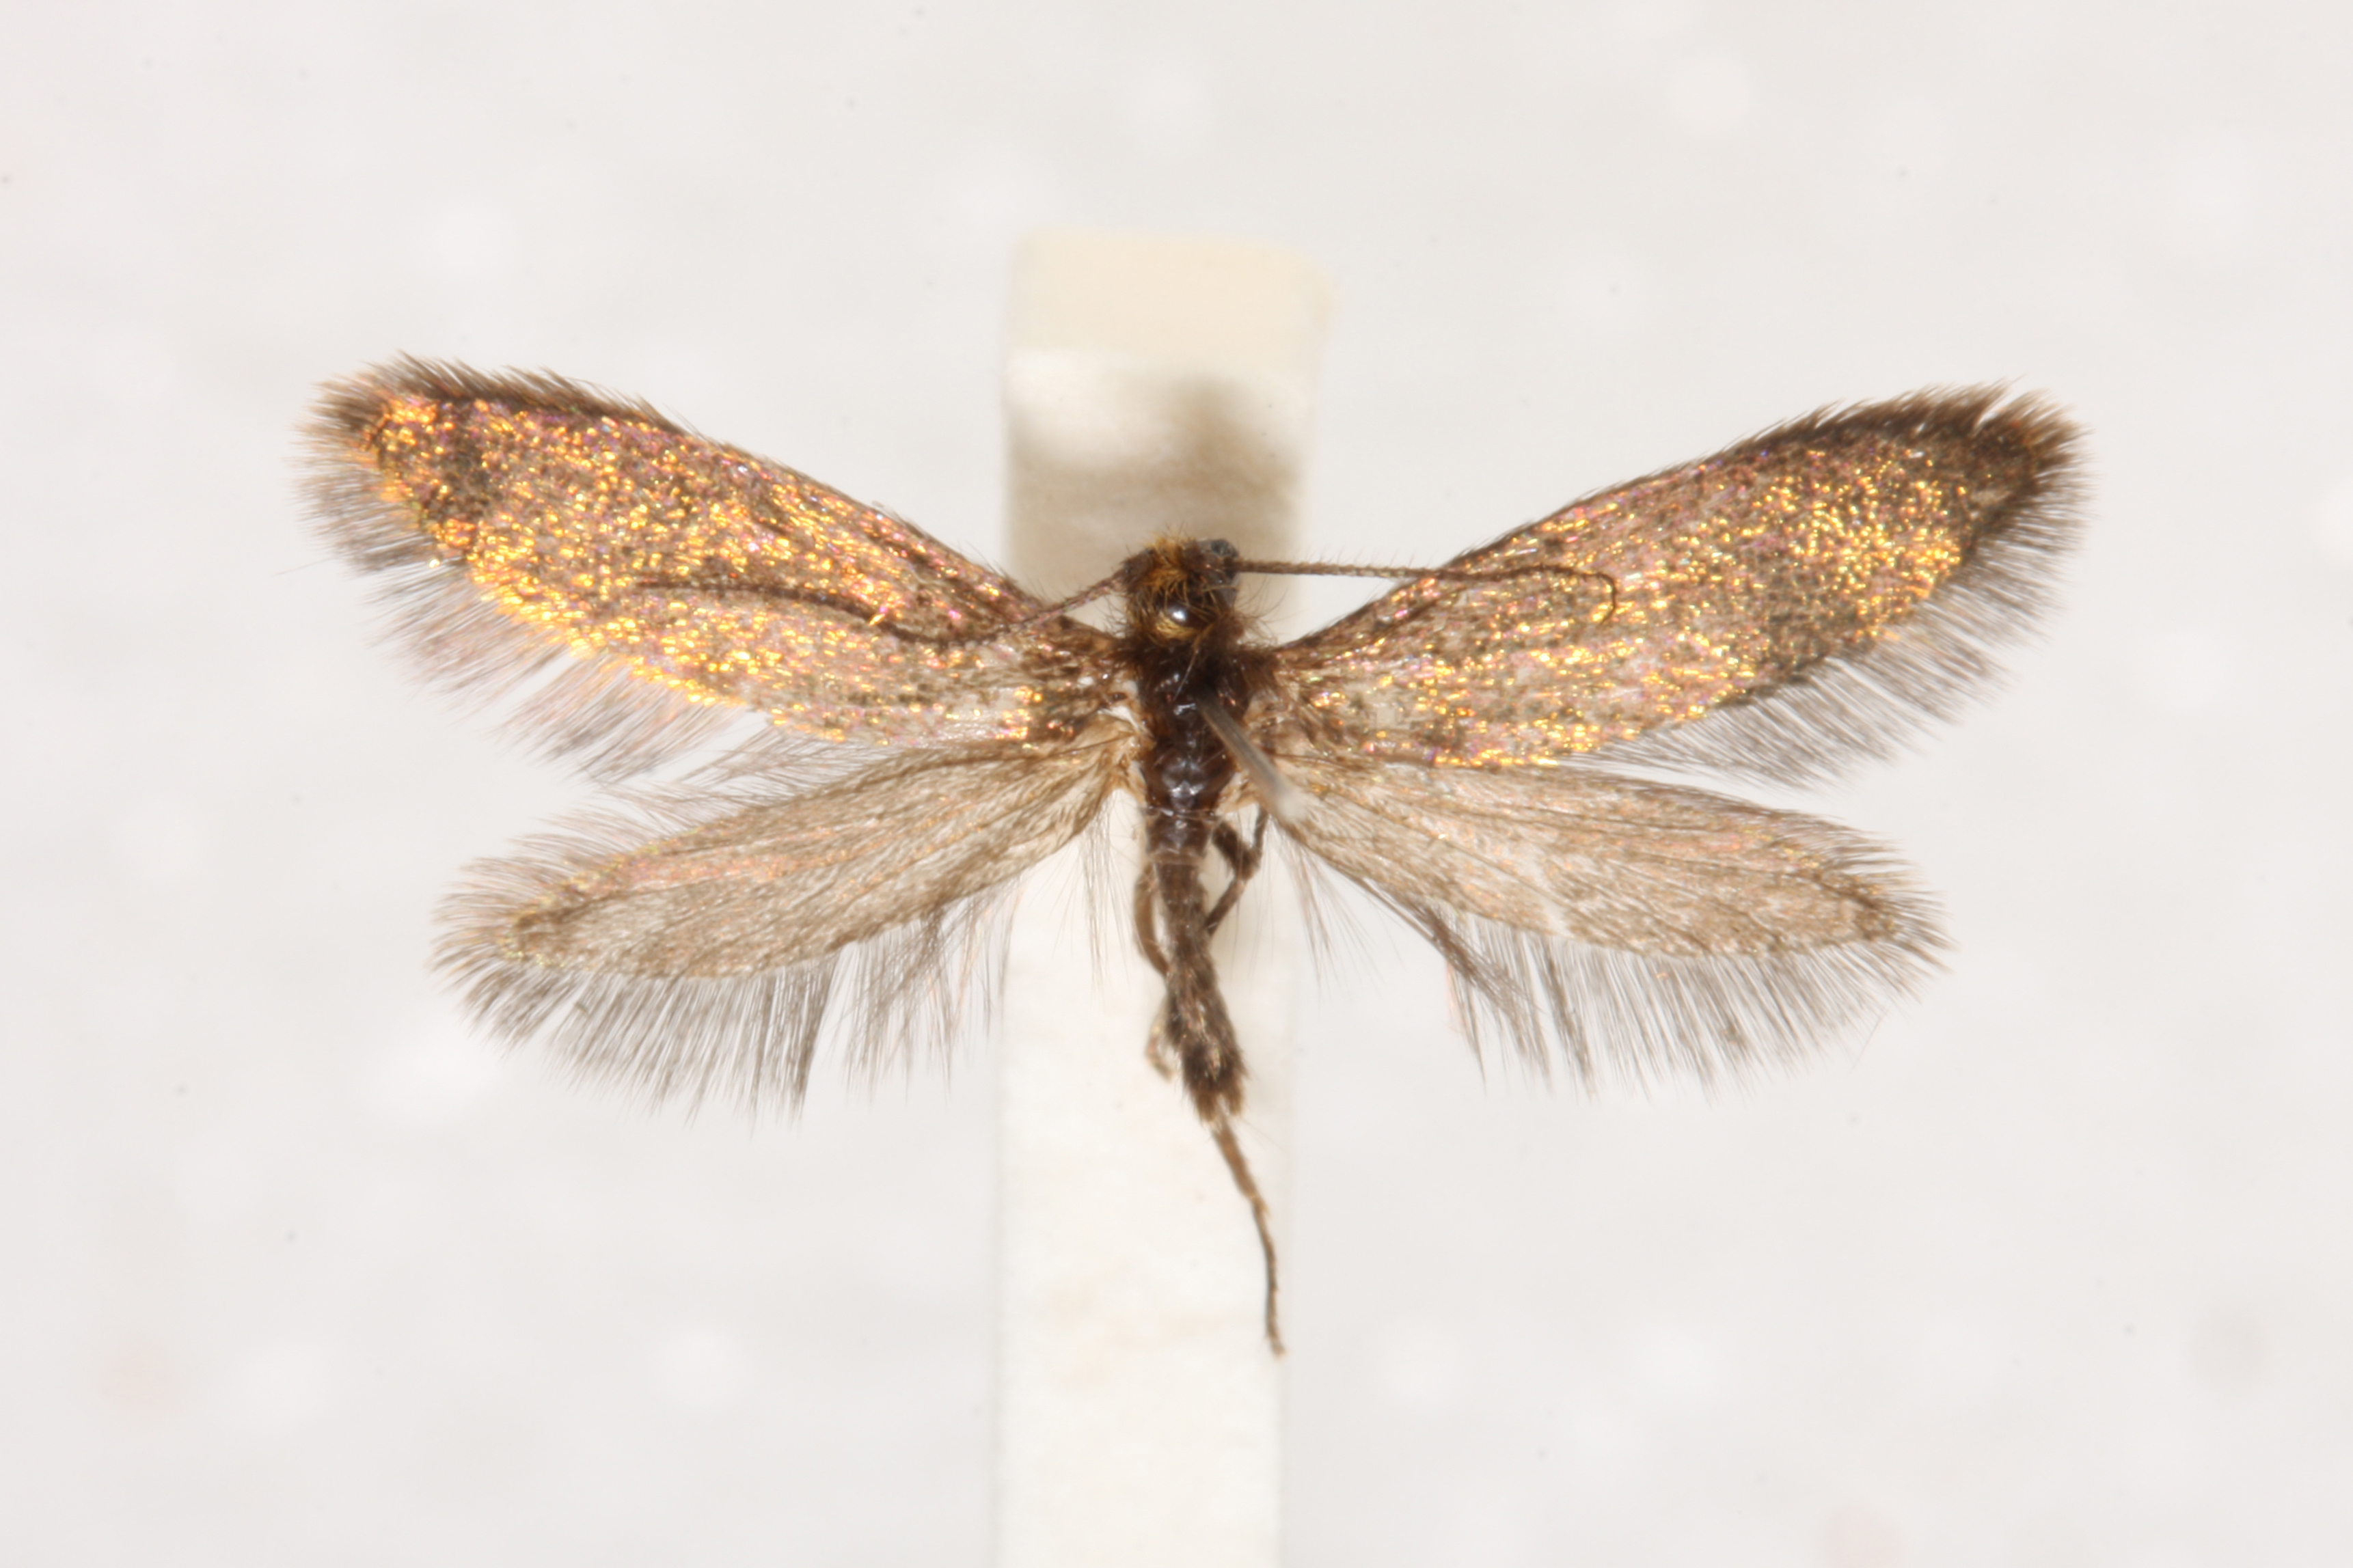 Pinned specimen of the enigma moth.